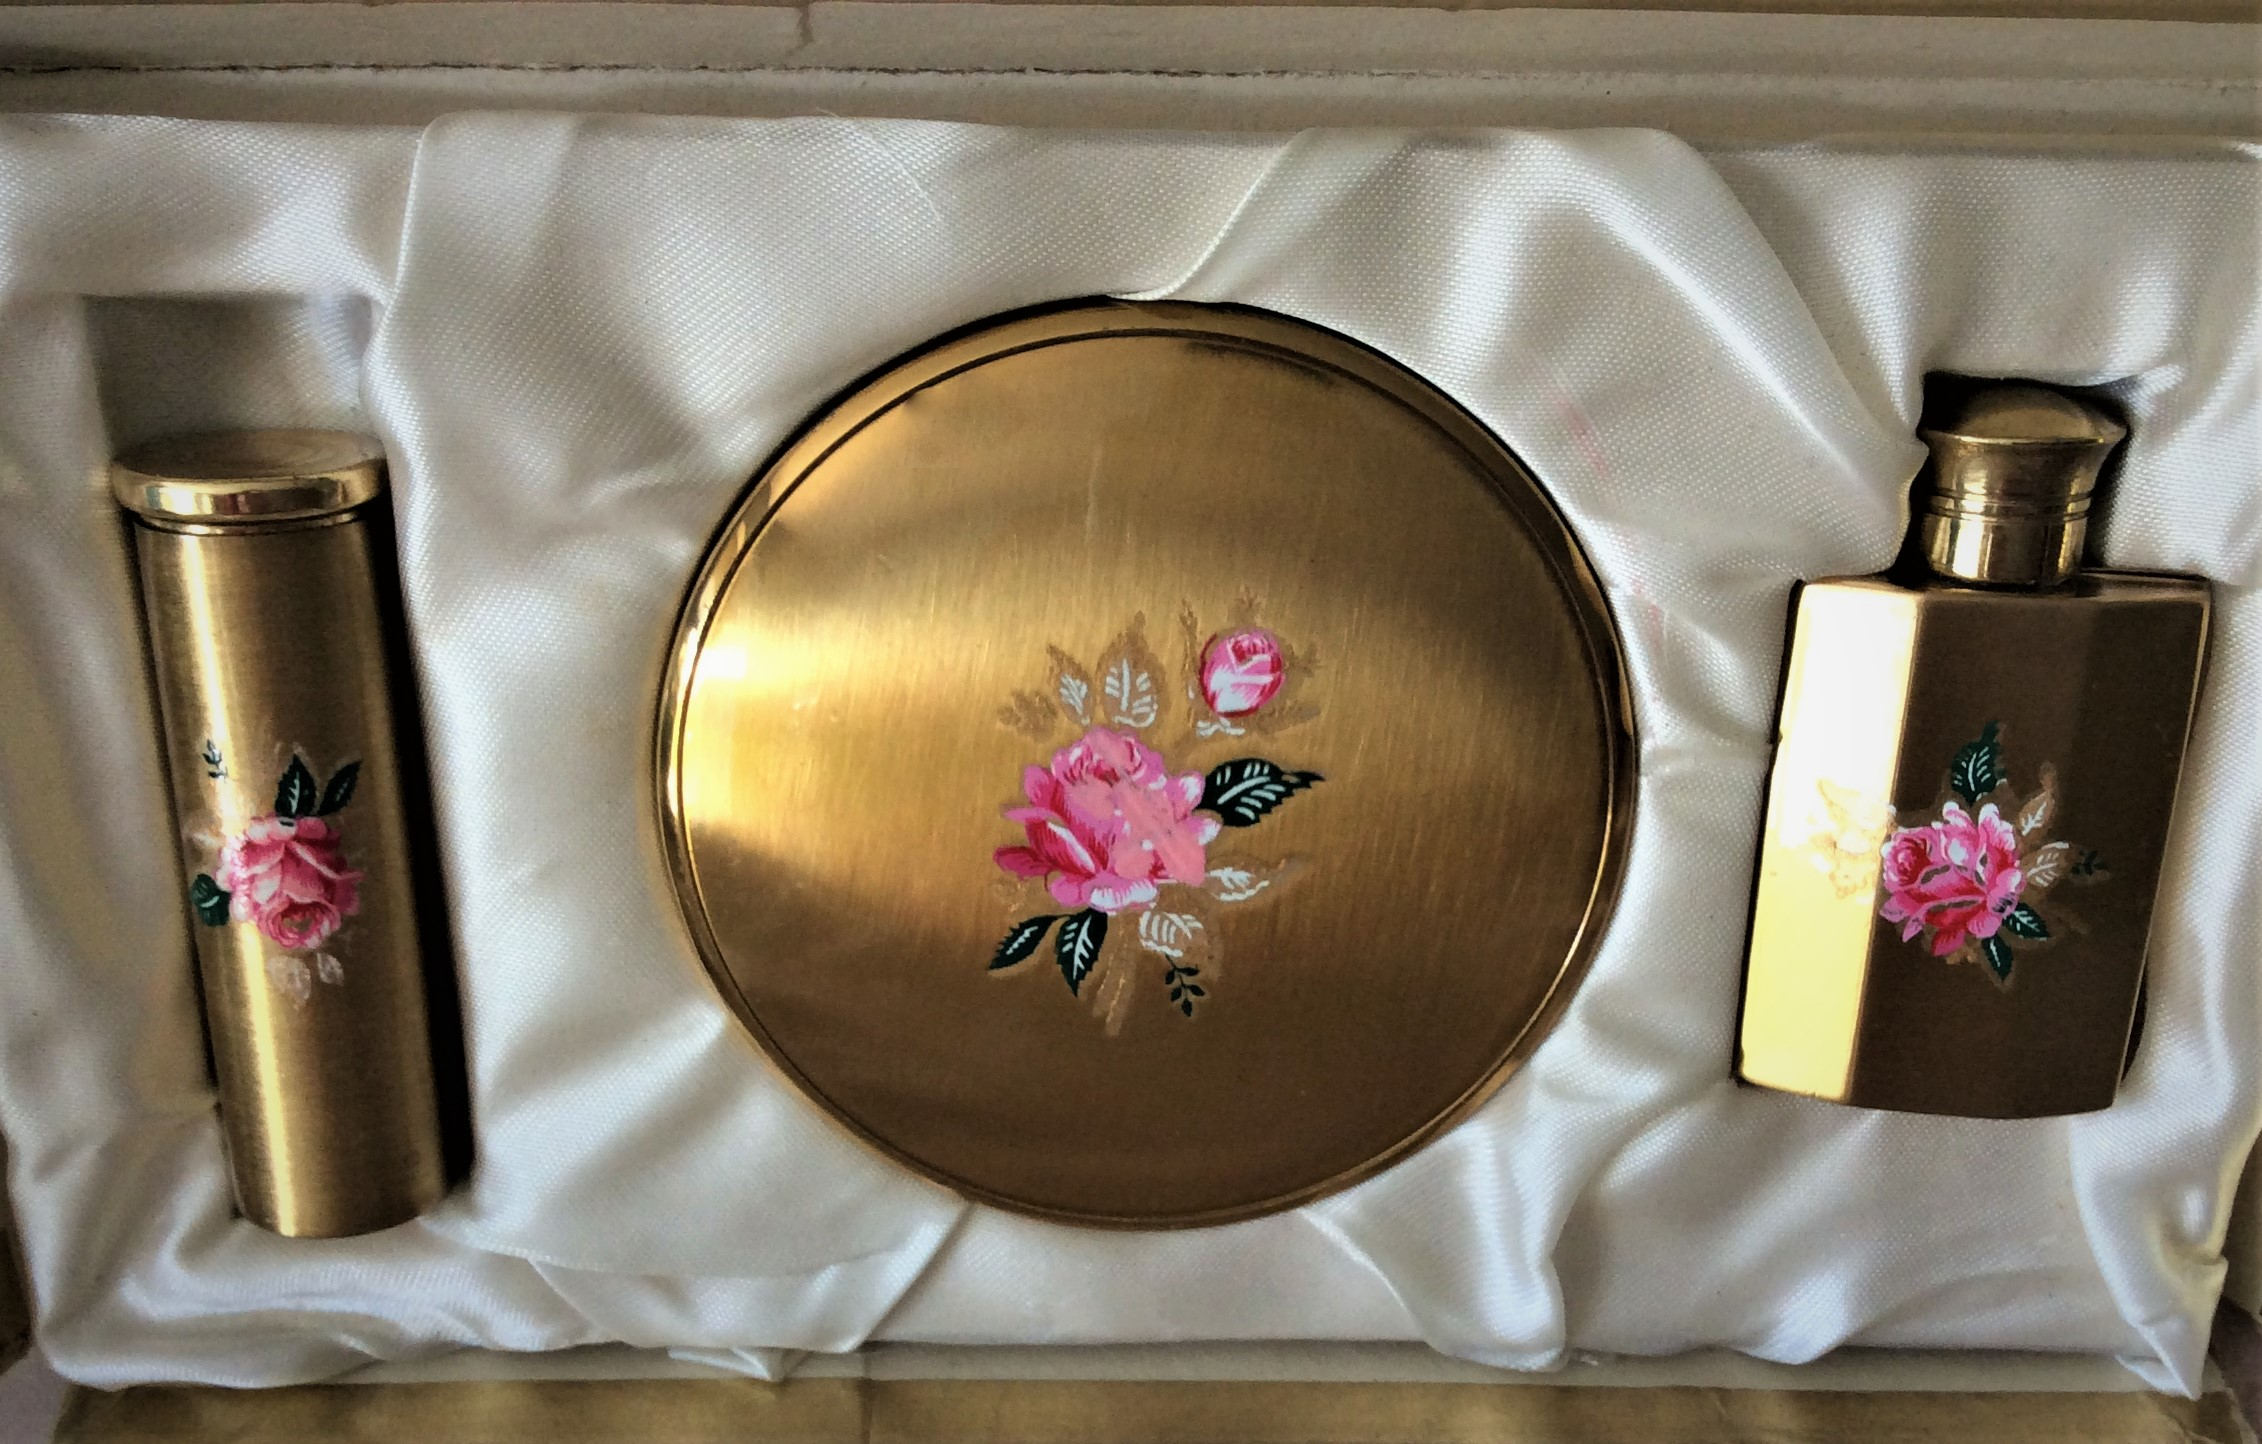 Superb Unused Vintage MASCOT Boxed Vanity Set complete with Powder Compact, Lipstick Holder & Perfume Bottle